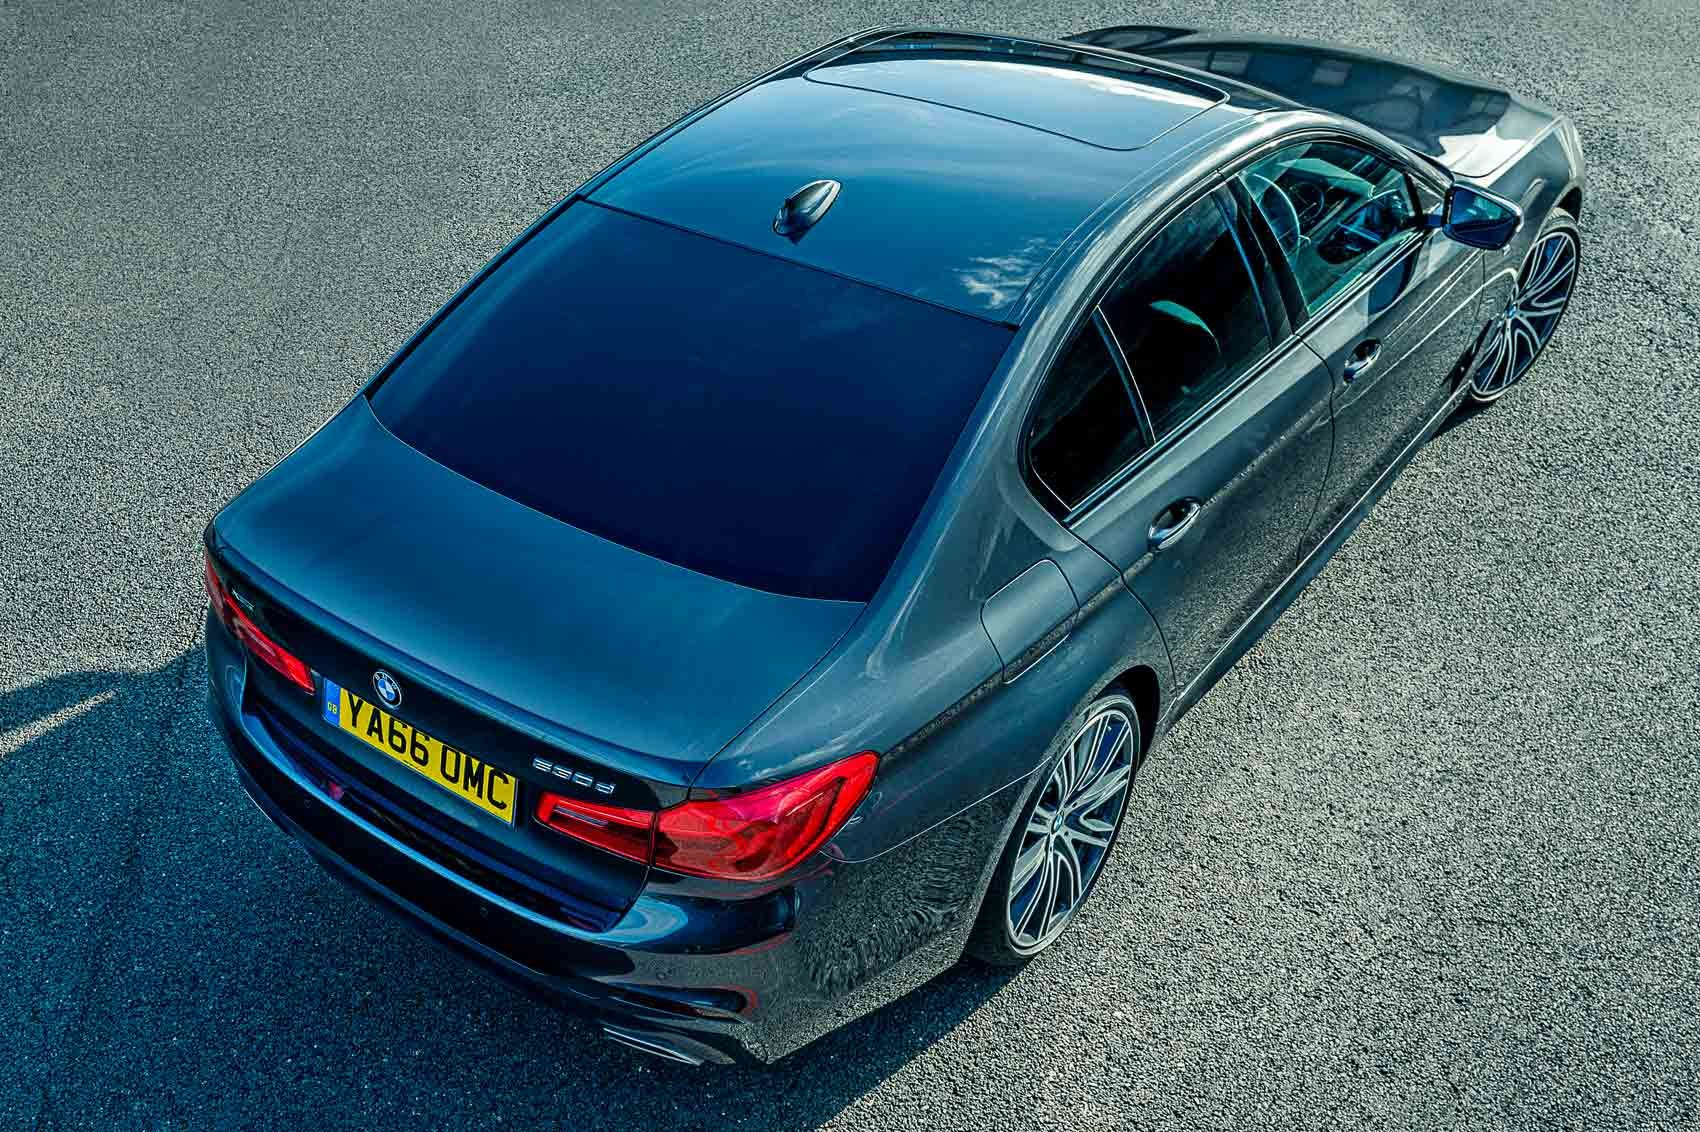 BMW 530d xDrive long-term review | CAR Magazine